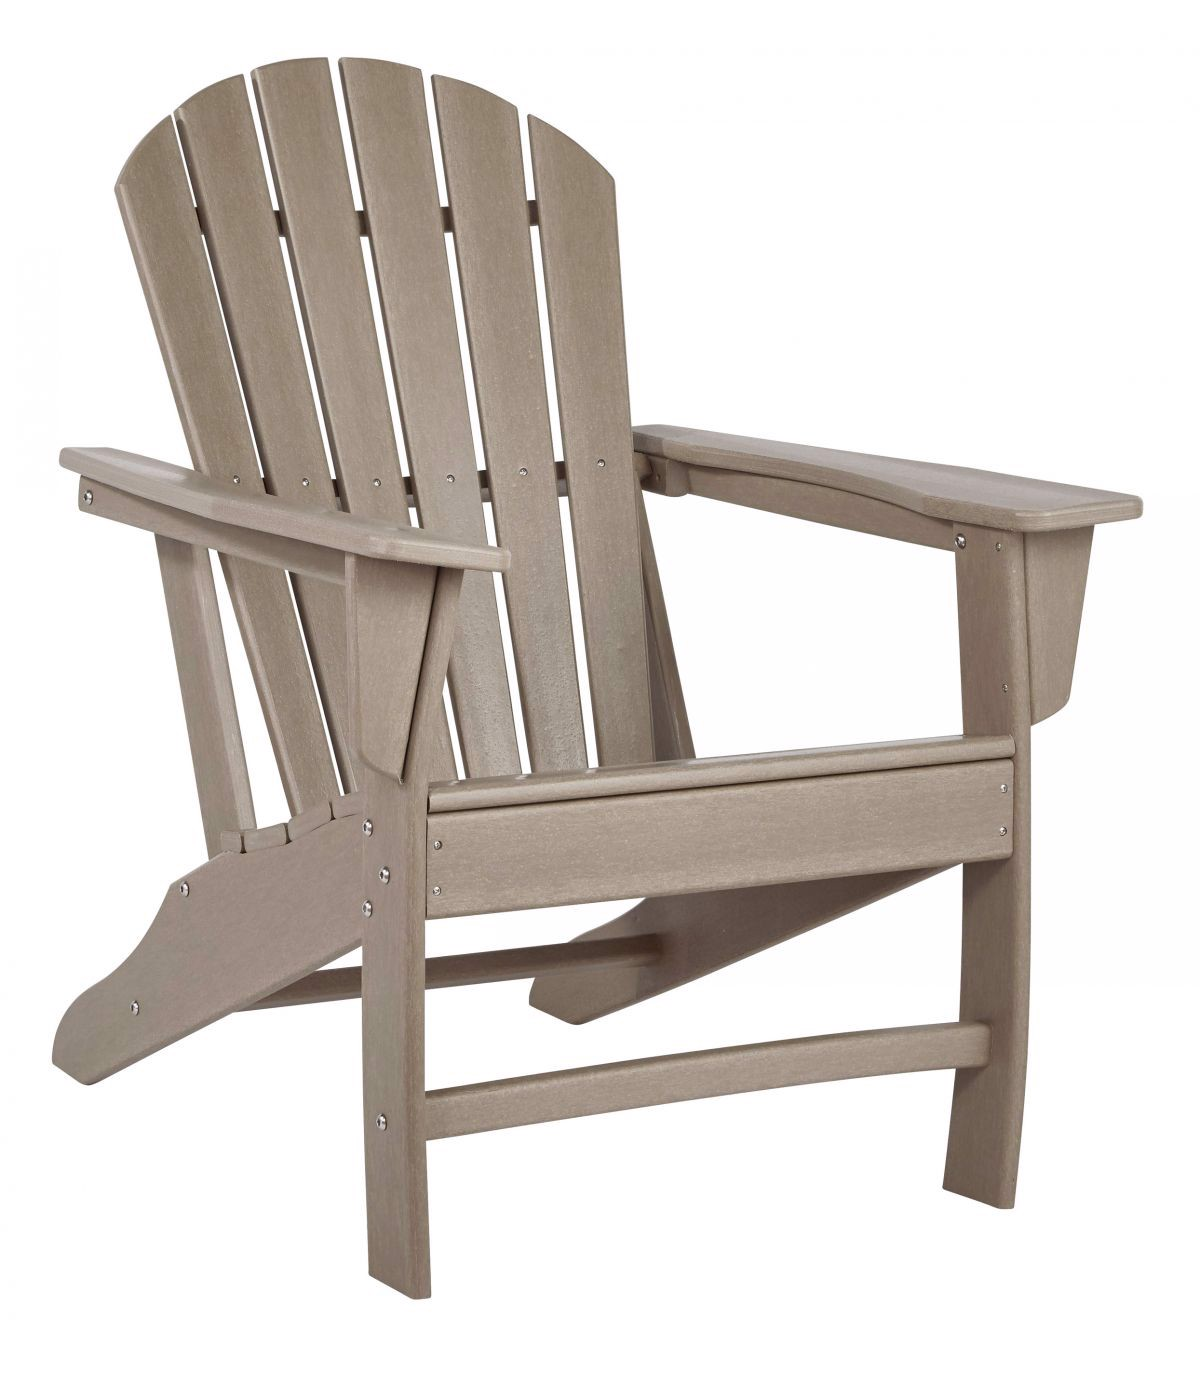 Picture of Sundown Treasure Patio Chair